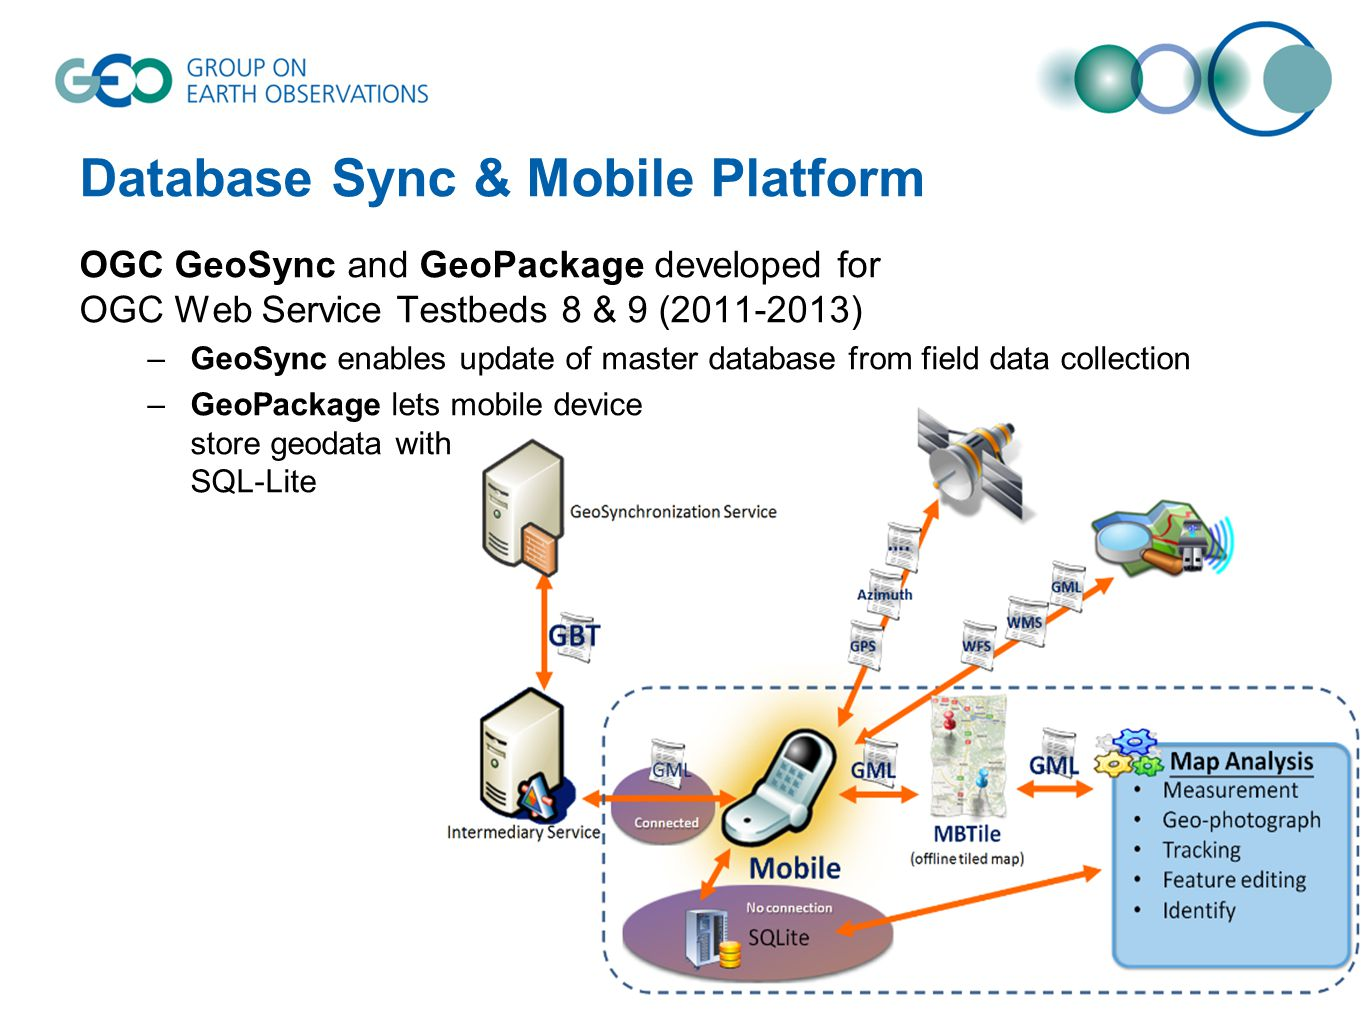 Database Sync & Mobile Platform OGC GeoSync and GeoPackage developed for OGC Web Service Testbeds 8 & 9 (2011-2013) –GeoSync enables update of master database from field data collection –GeoPackage lets mobile device store geodata with SQL-Lite